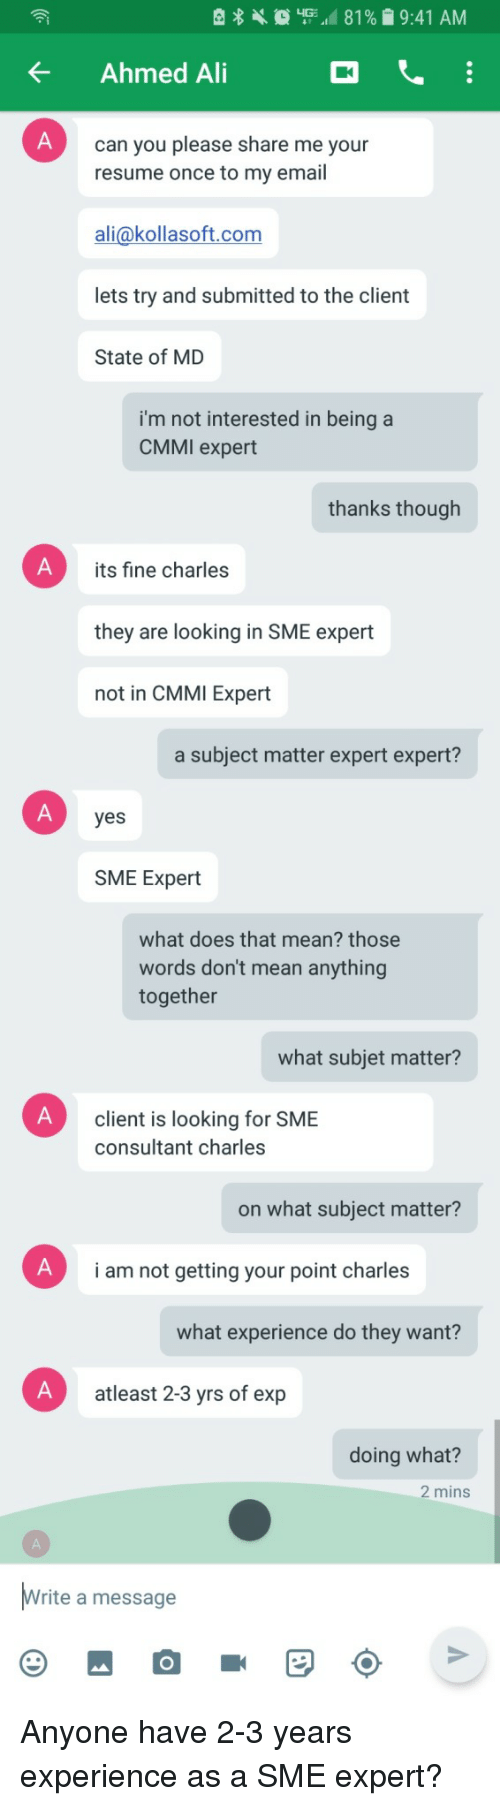 Ali, Email, and Mean: KAhmed Ai  can you please share me your  resume once to my email  ali@kollasoft.com  lets try and submitted to the client  State of MD  i'm not interested in being a  CMMI expert  thanks though  its fine charles  they are looking in SME expert  not in CMMI Expert  a subject matter expert expert?  yes  SME Expert  what does that mean? those  words don't mean anything  together  what subjet matter?  client is looking for SME  consultant charles  on what subject matter?  i am not getting your point charles  what experience do they want?  atleast 2-3 yrs of exp  doing what?  2 mins  rite a message Anyone have 2-3 years experience as a SME expert?